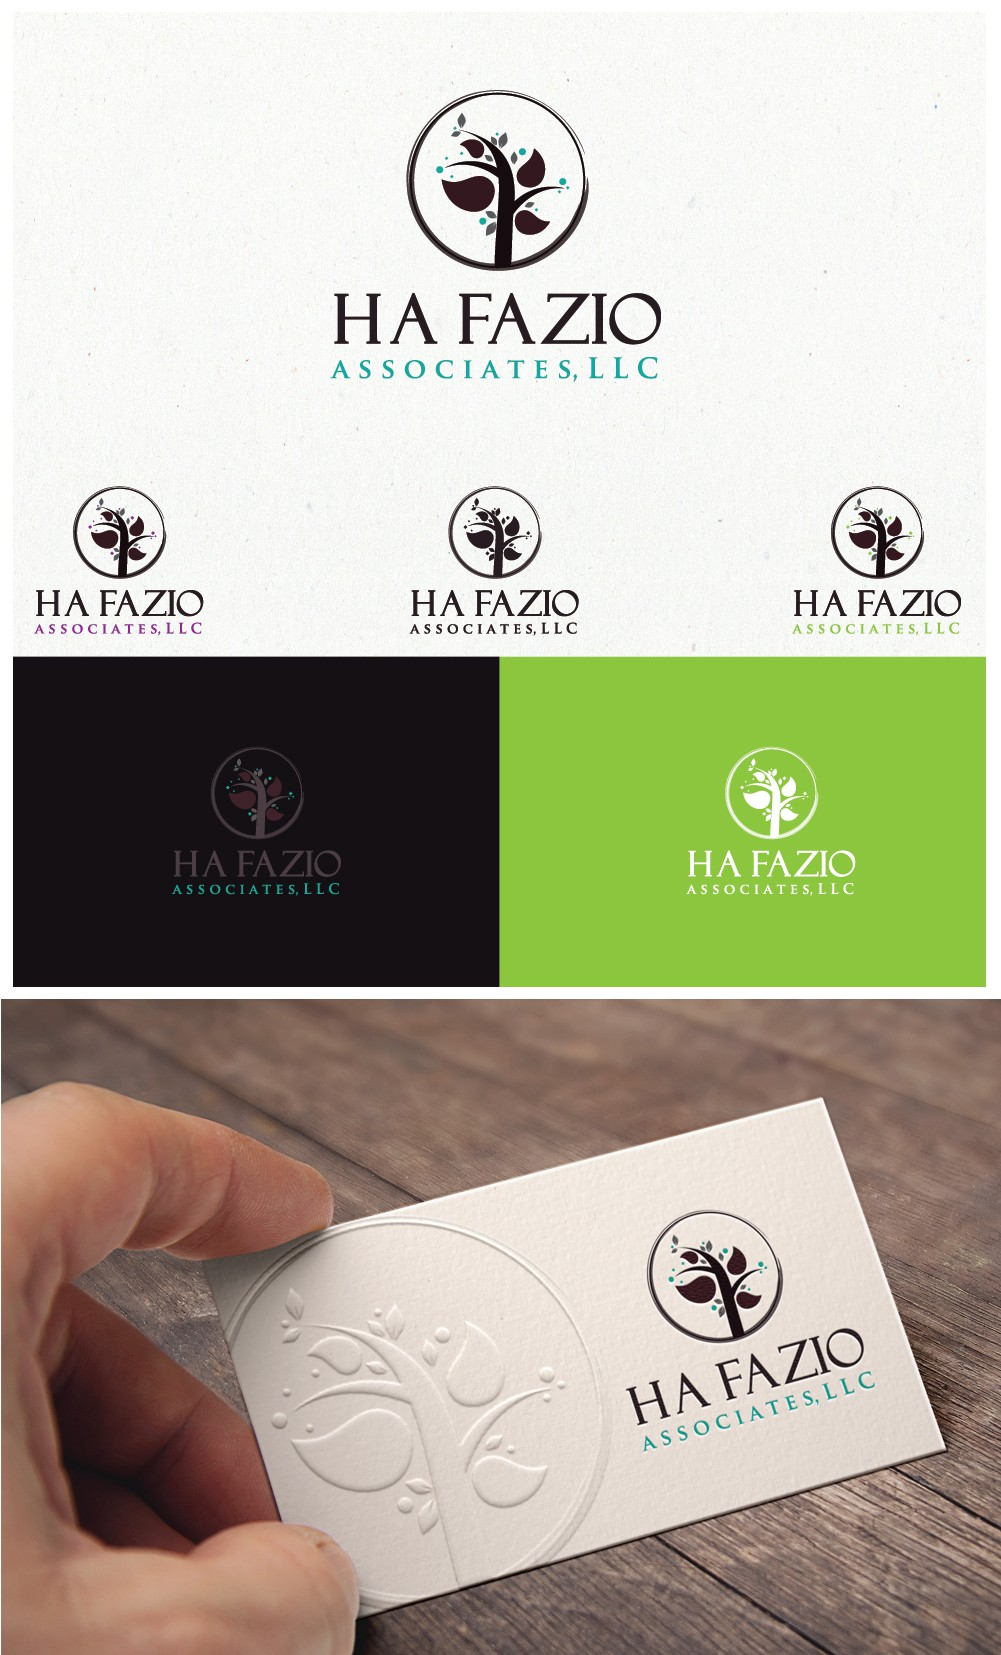 Create a strong, bold, compelling, & professional logo for an artisanal consultancy firm.